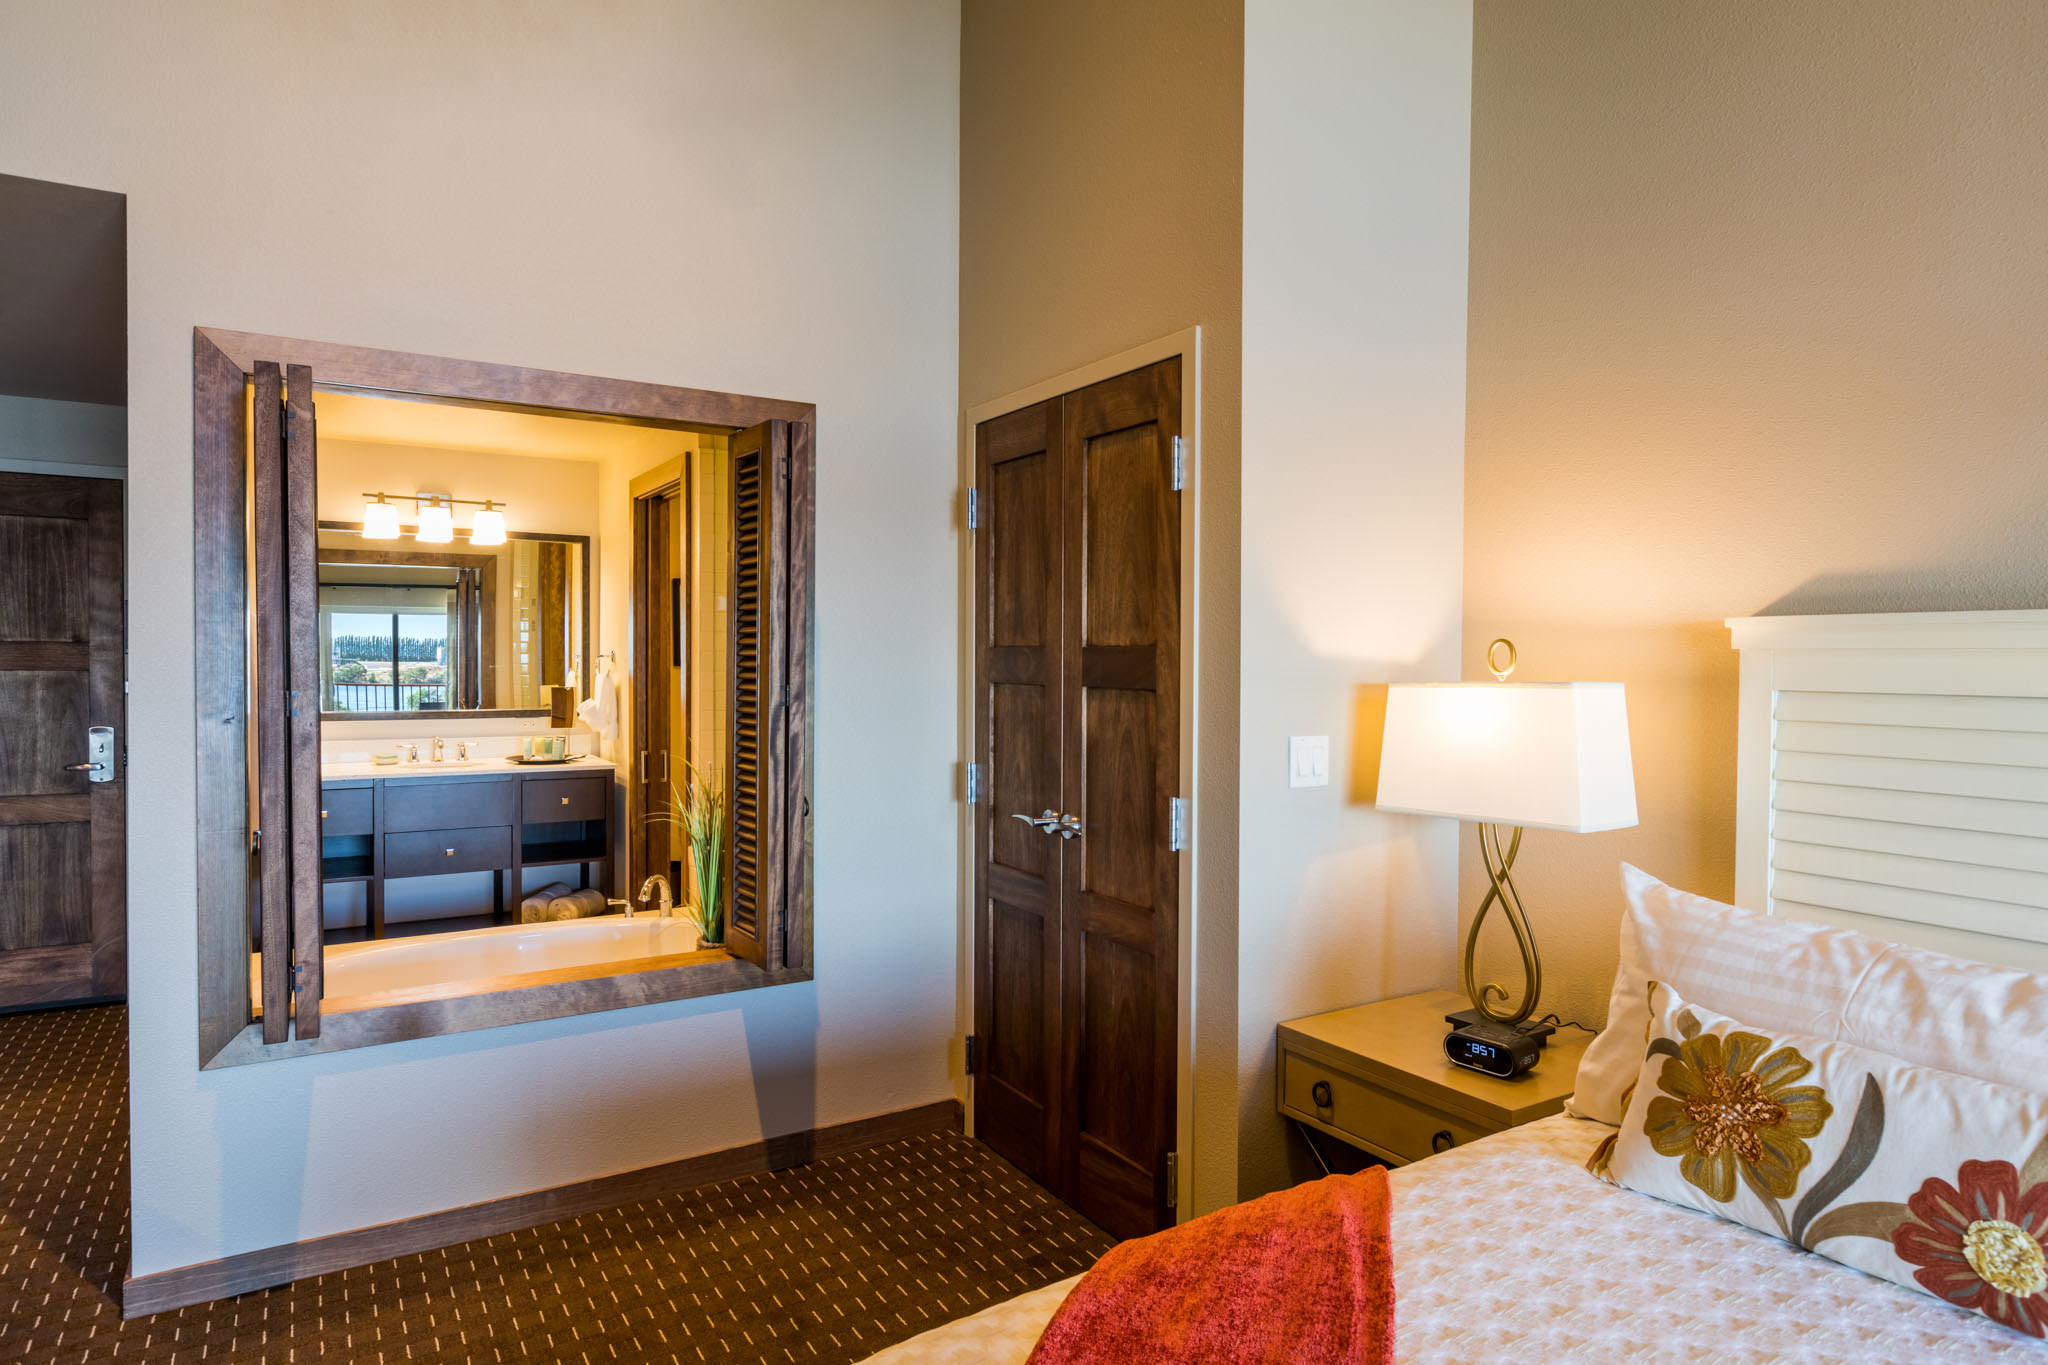 Grand Cru Riverfront King Premium room in Richland